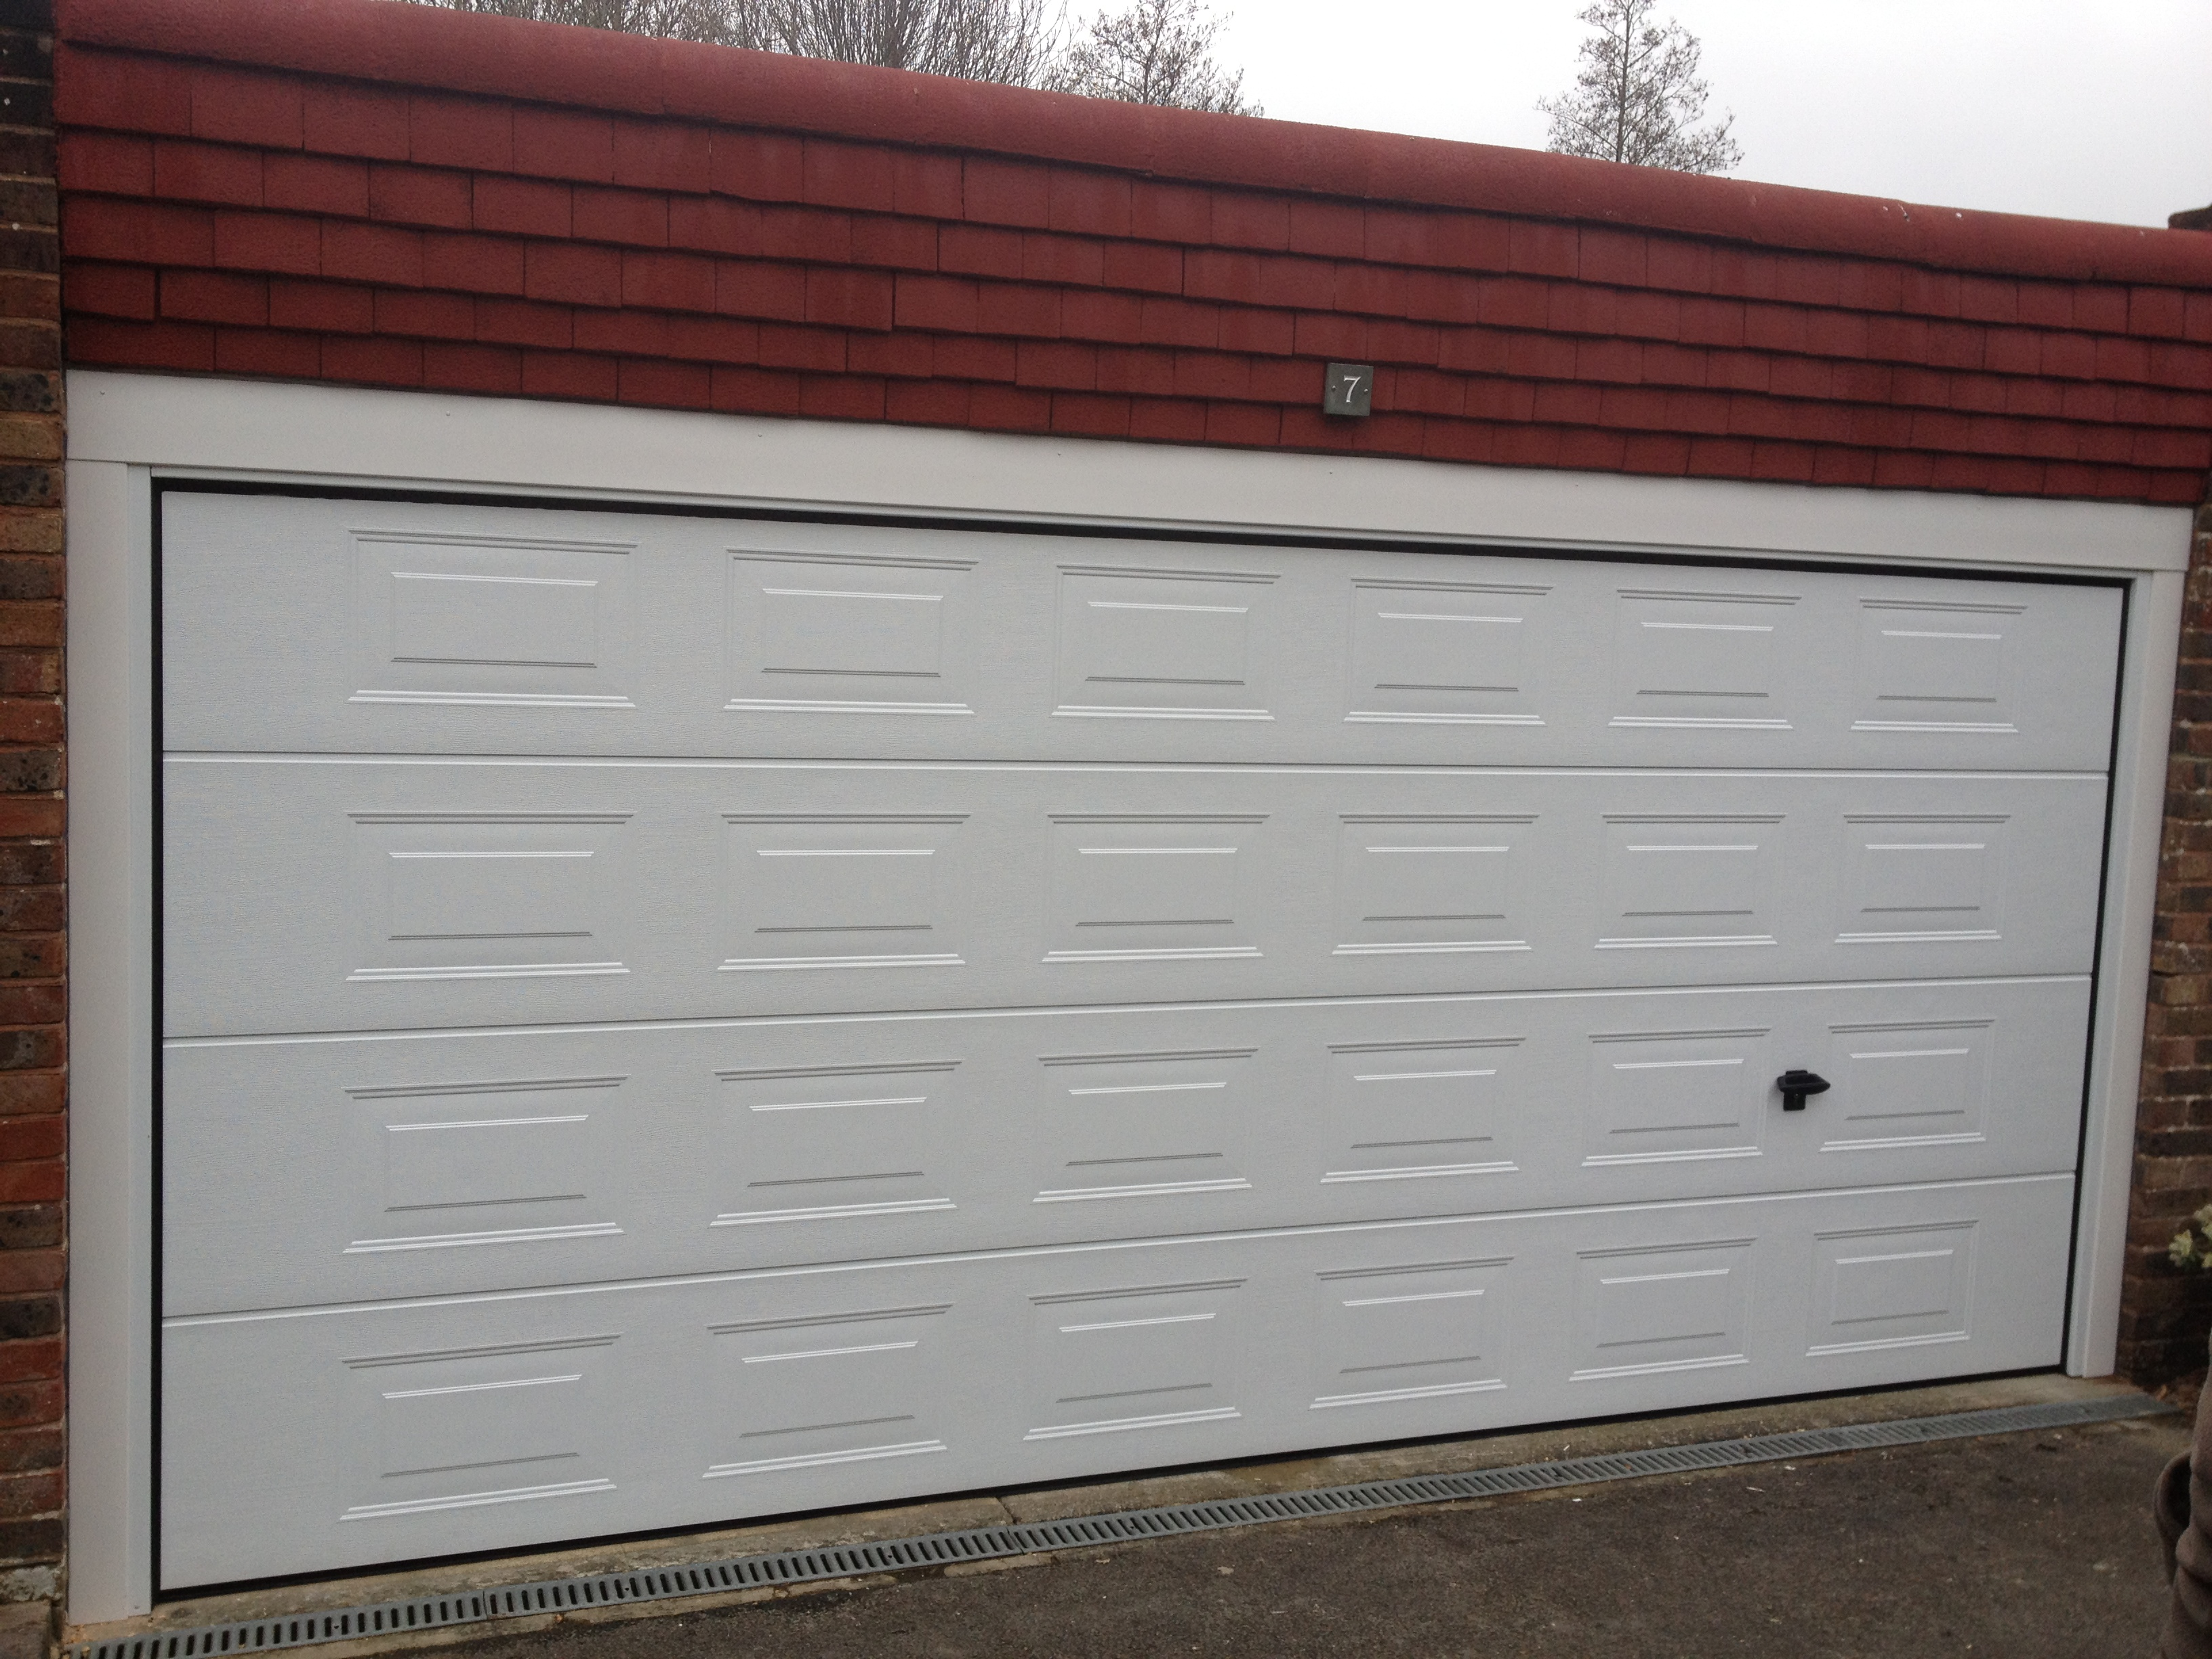 South East Garage Doors Repairs Replacement Services To East